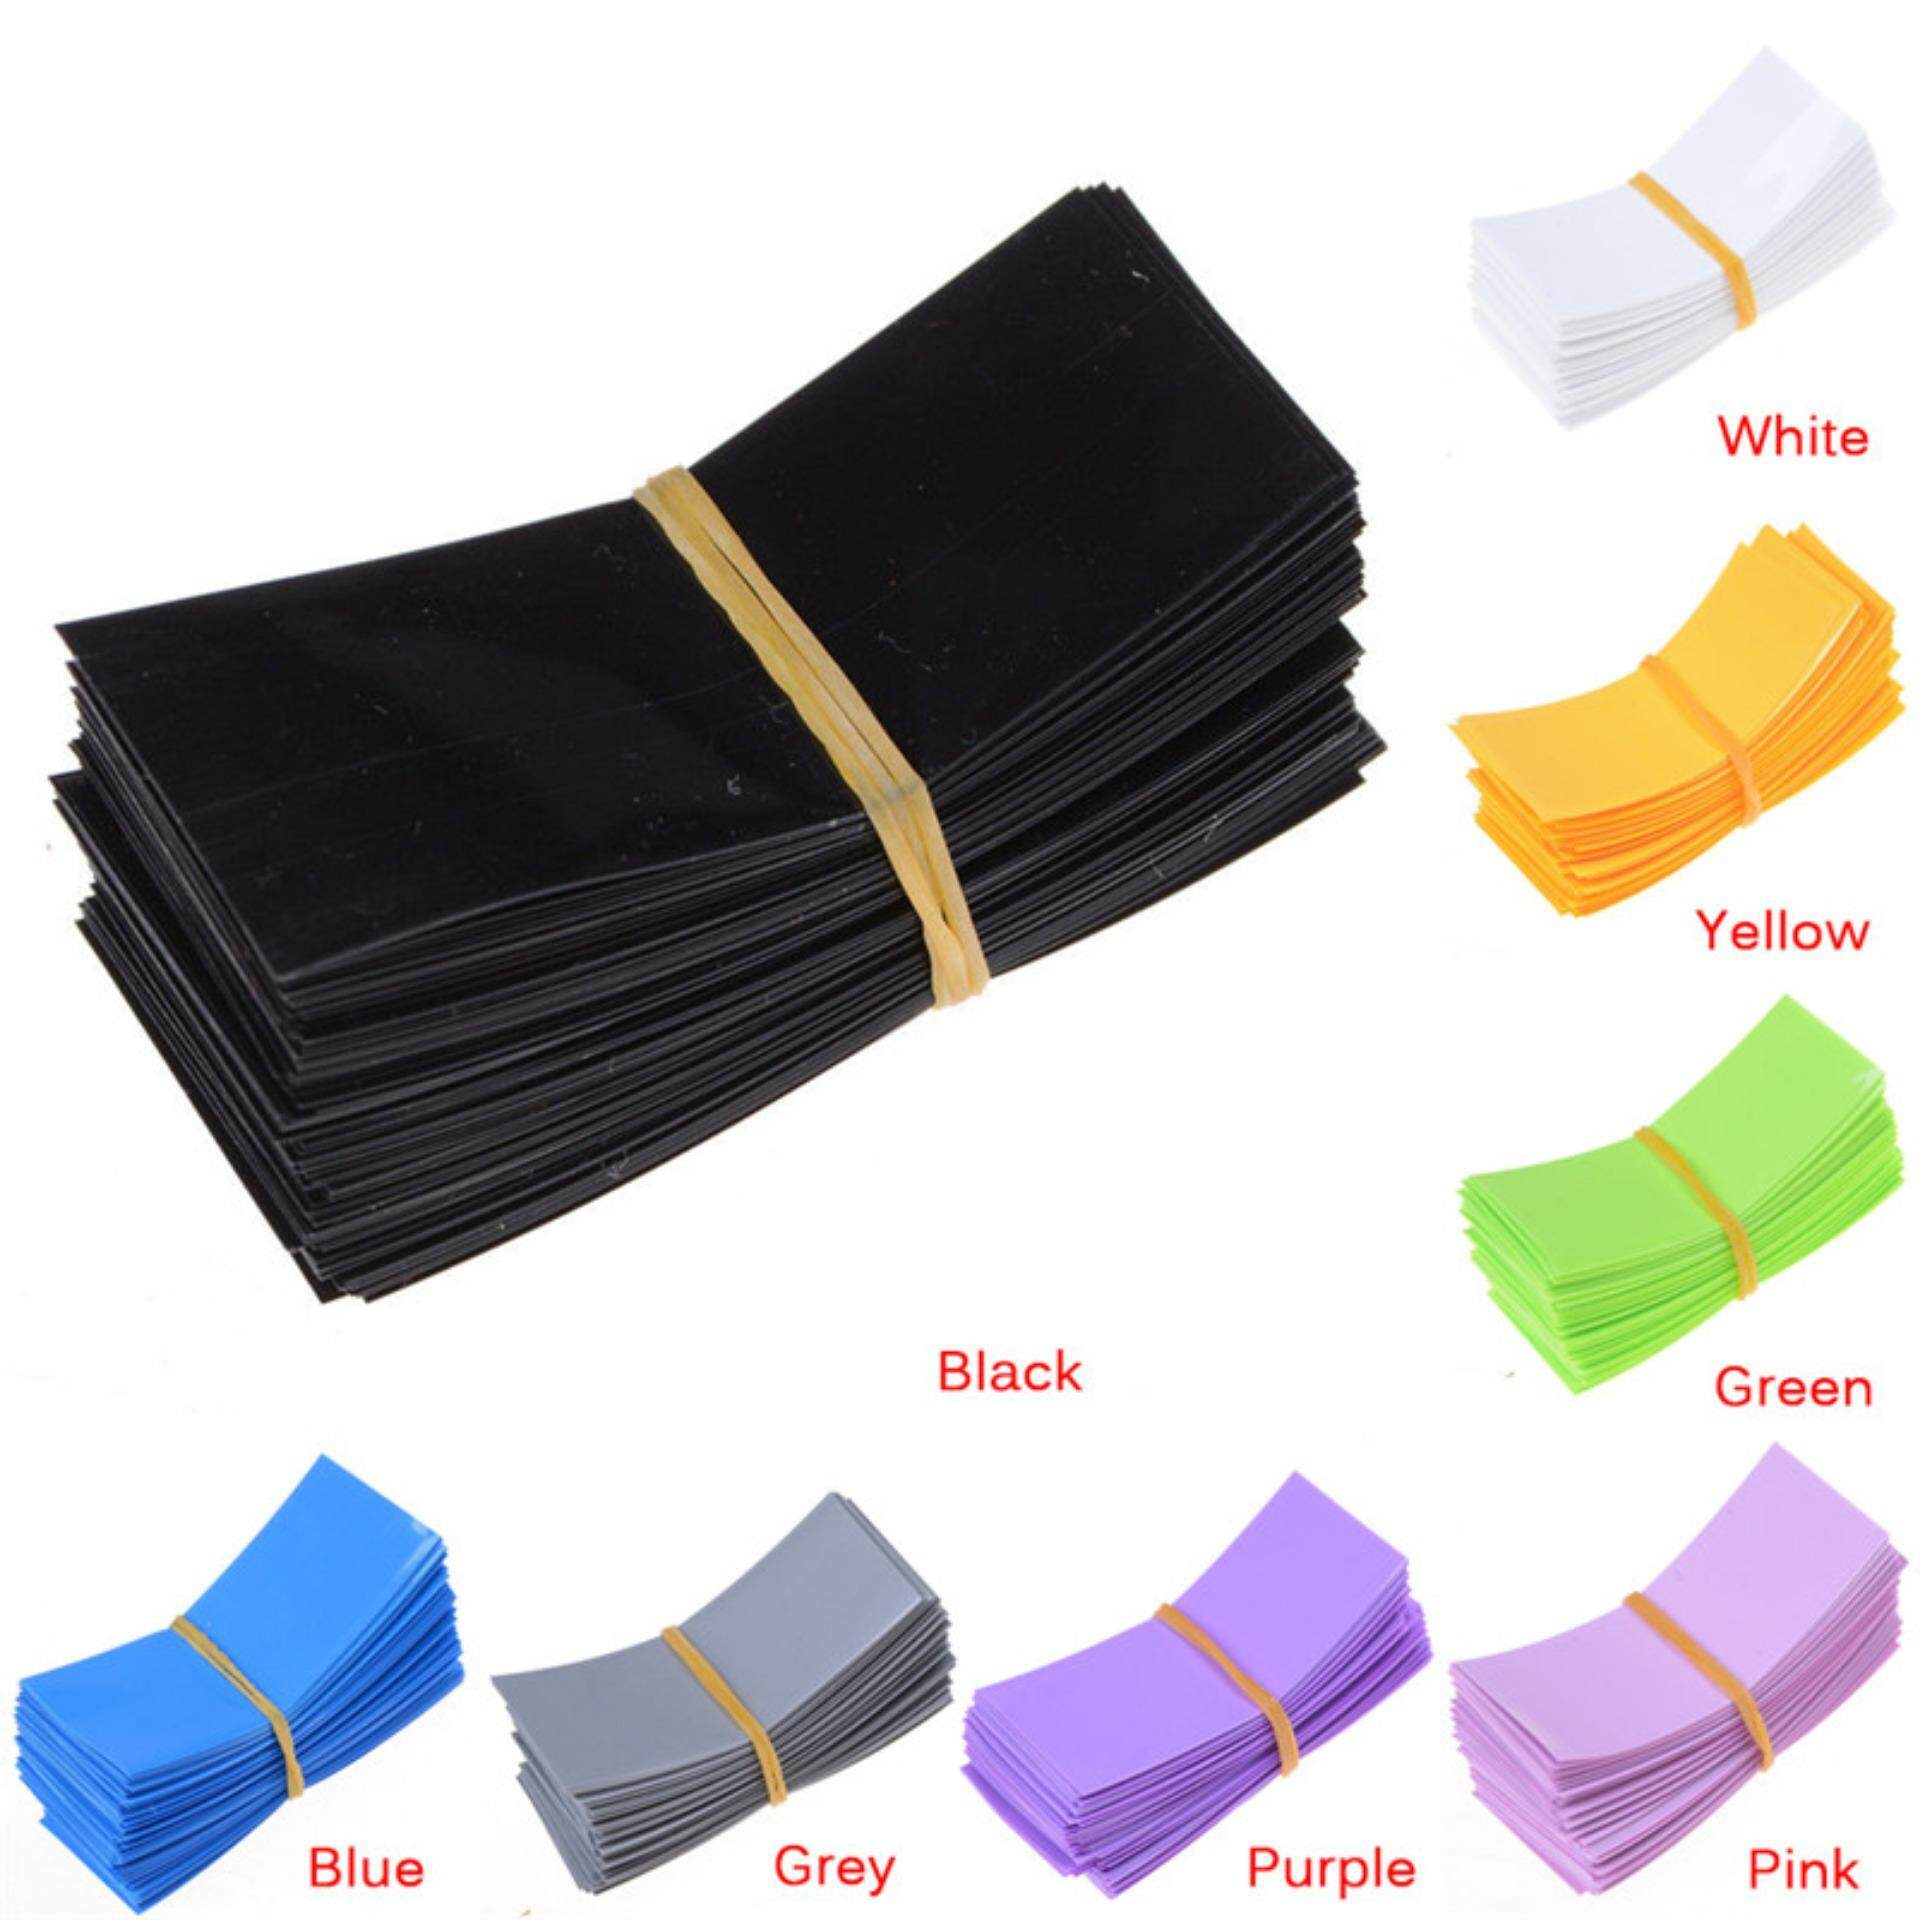 Electrical Equipment For Sale Electricals Prices Brands Review Typical Wiring 4 Pole 3 5 Mm Jack Veli Shy 100pcs 18650 Battery Wrap Pvc Heat Shrink Tubing Precut Film Tape Cover Durable